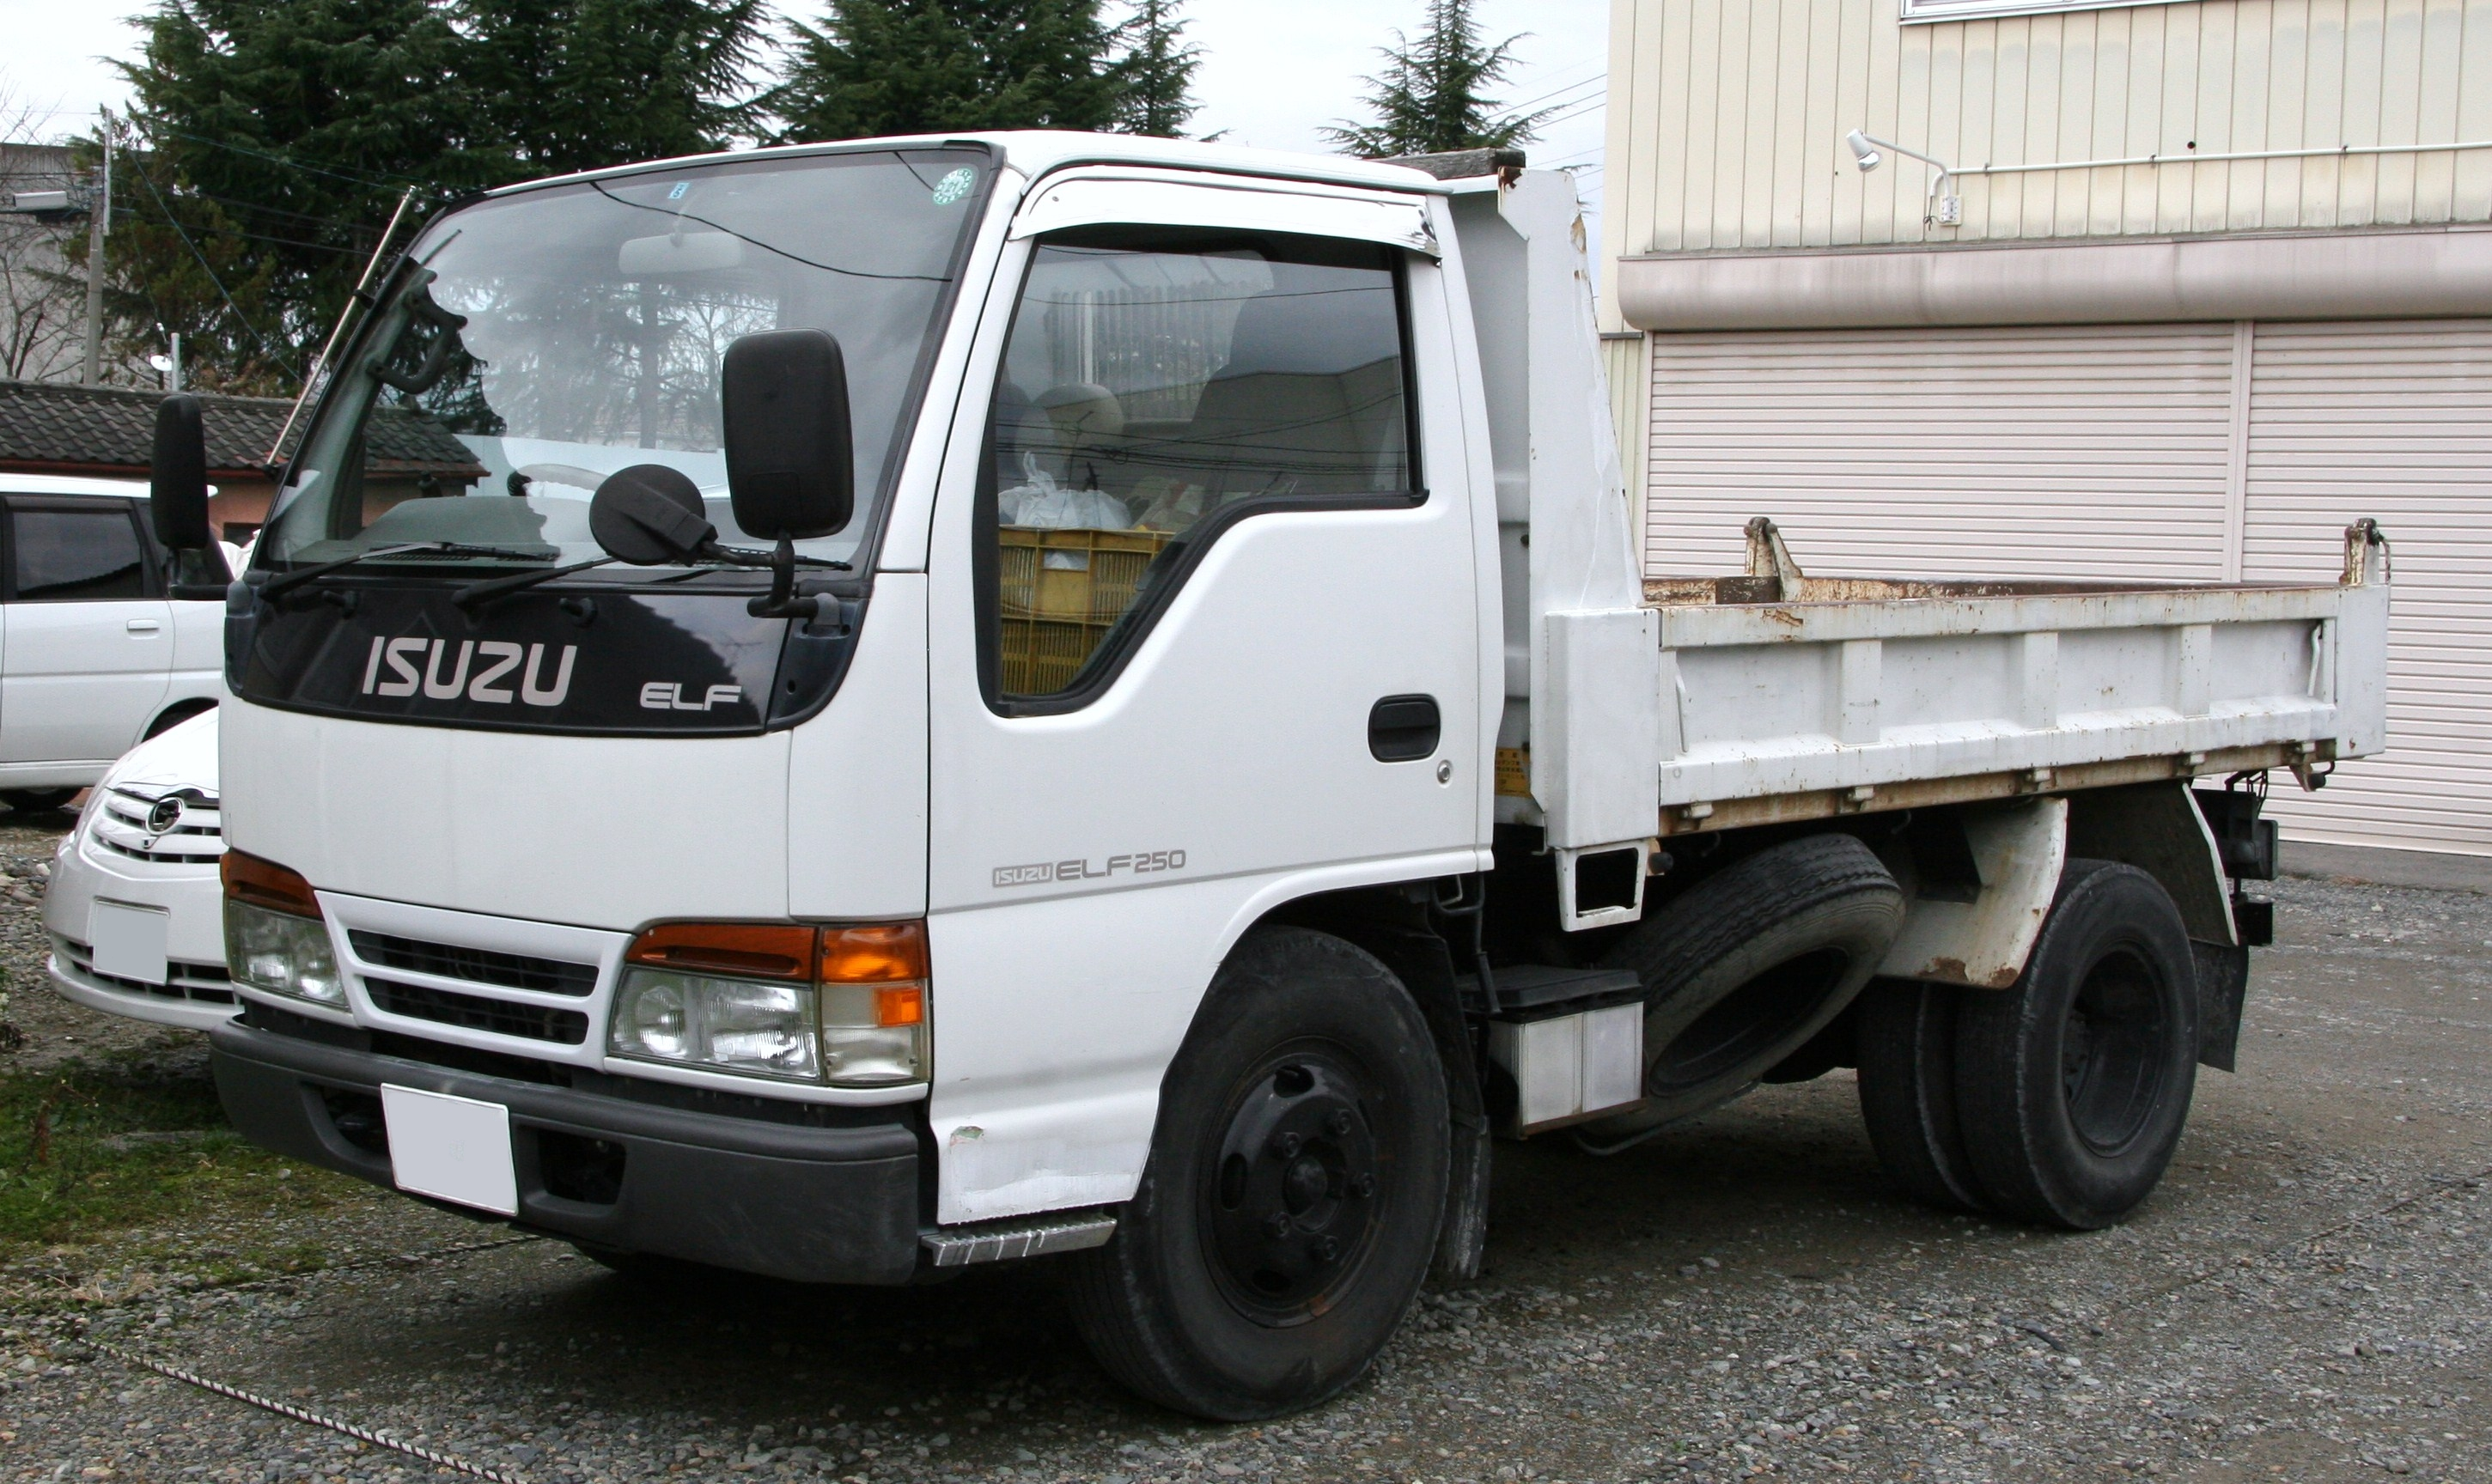 Isuzu CSS Auv Buses Pickup Suv Trucks Engines Spare Parts Catalog as well SR20DET ECU Wiring Diagram likewise Isuzu Truck 4x4 likewise 912964 Dual Battery Setup And Some Snow Plowing Pics further Honda C100 Engine Diagram. on 1993 isuzu truck wiring diagram